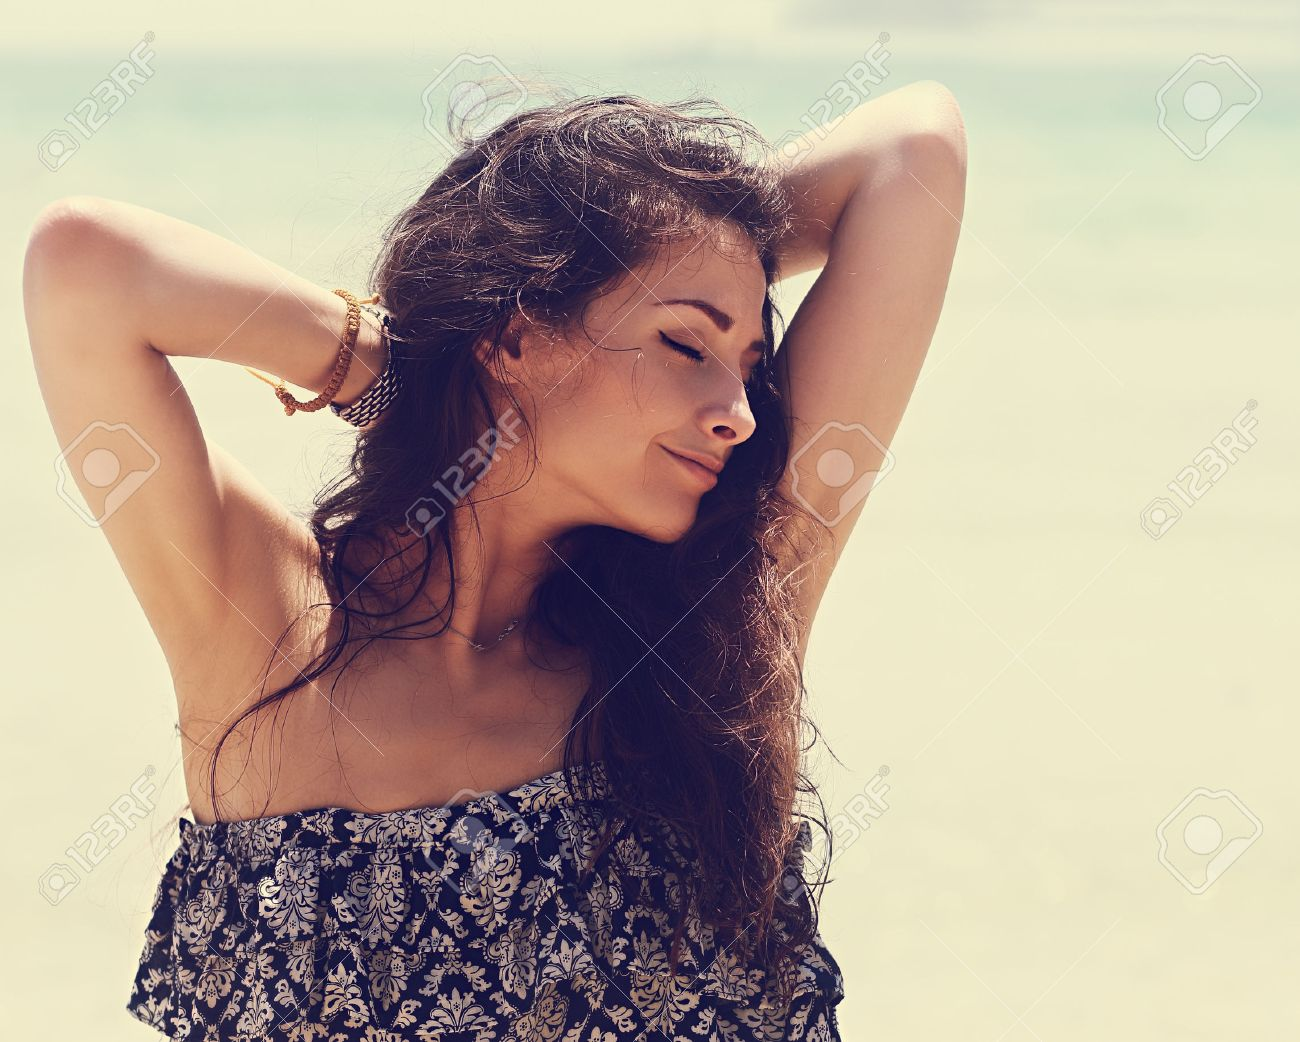 vintage armpits Happy beautiful closed eyes woman relaxing with epilation armpits on blue  sea background. Closeup vintage